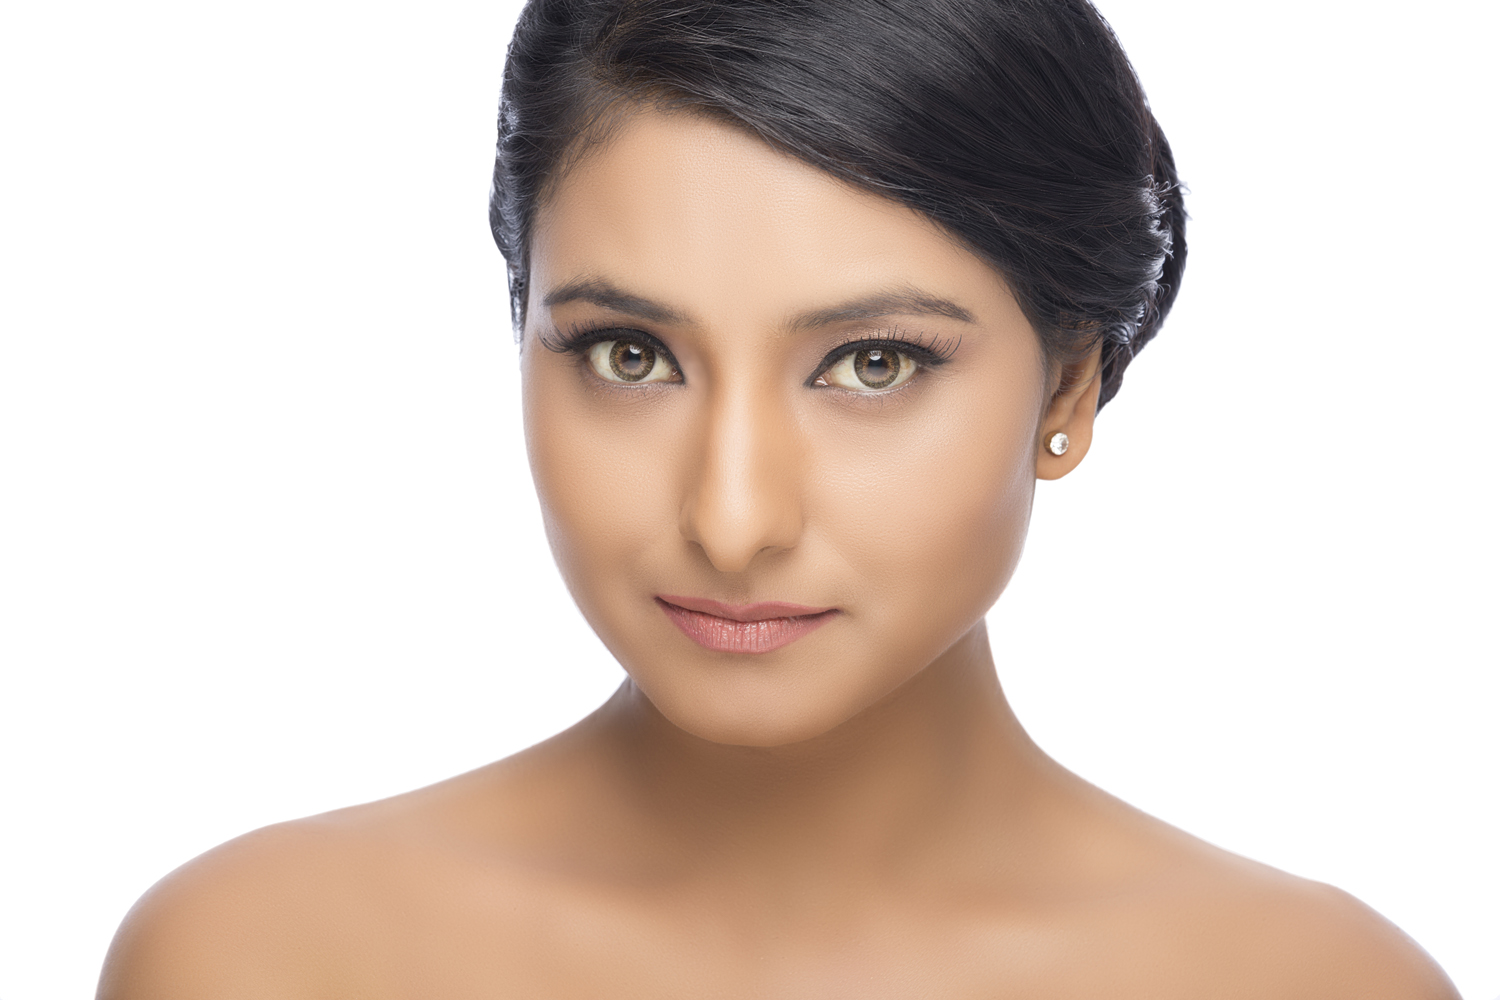 saffron cream for skin whitening